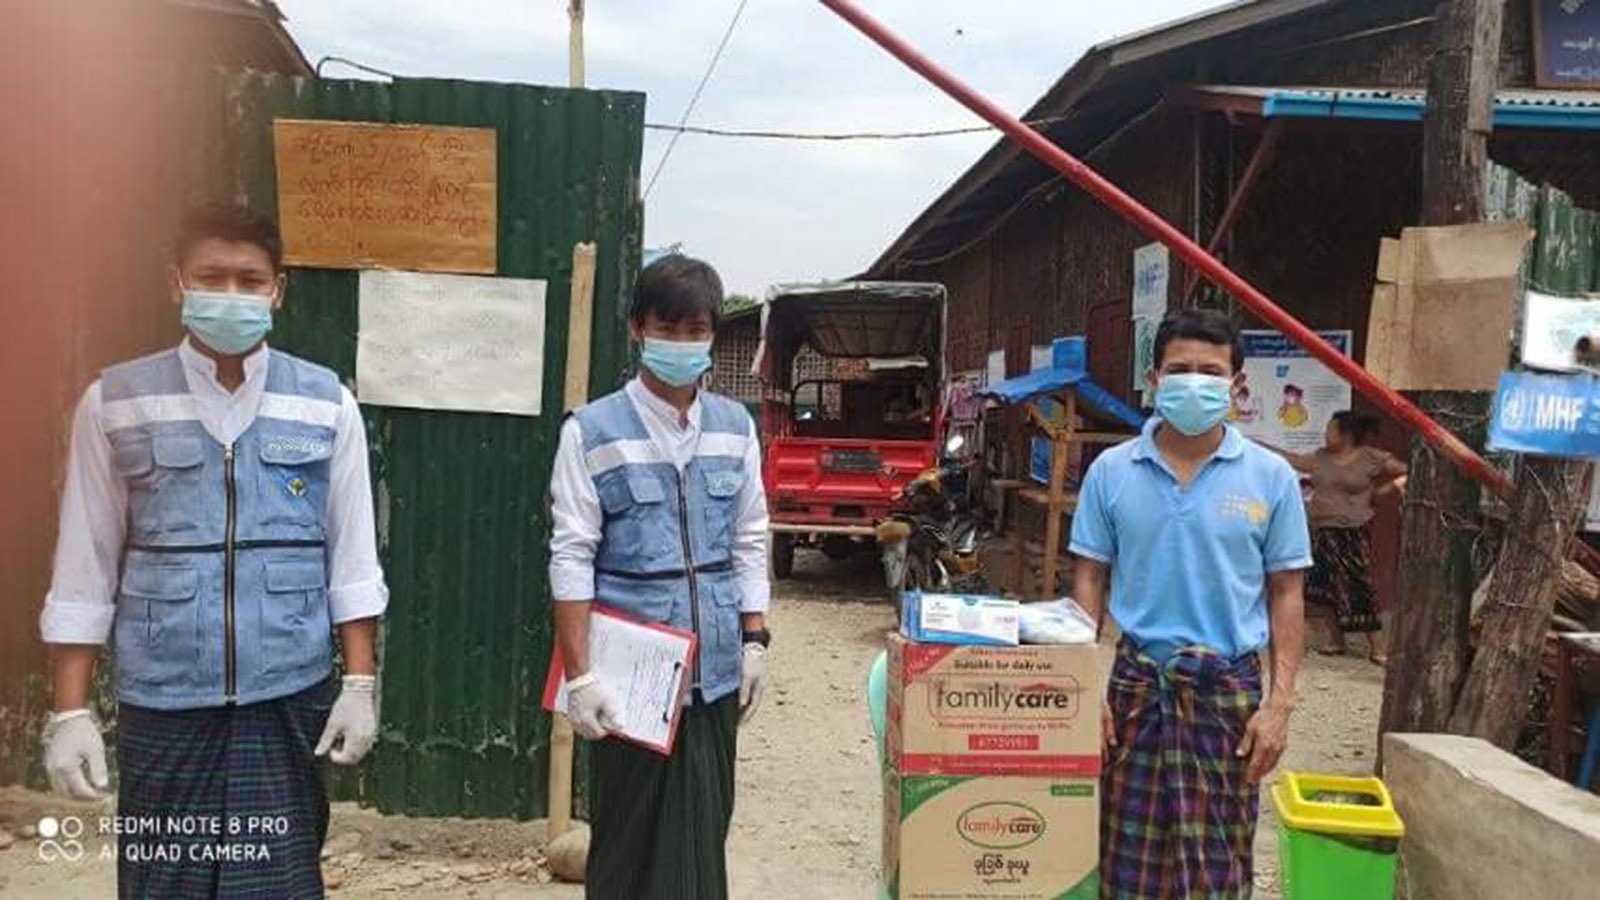 Officials from Ministry of Social Welfare, Relief and Resettlement offering boxes of face masks and soaps at the Internally Displaced Persons camp in Kachin State yesterday. Photo: MNA